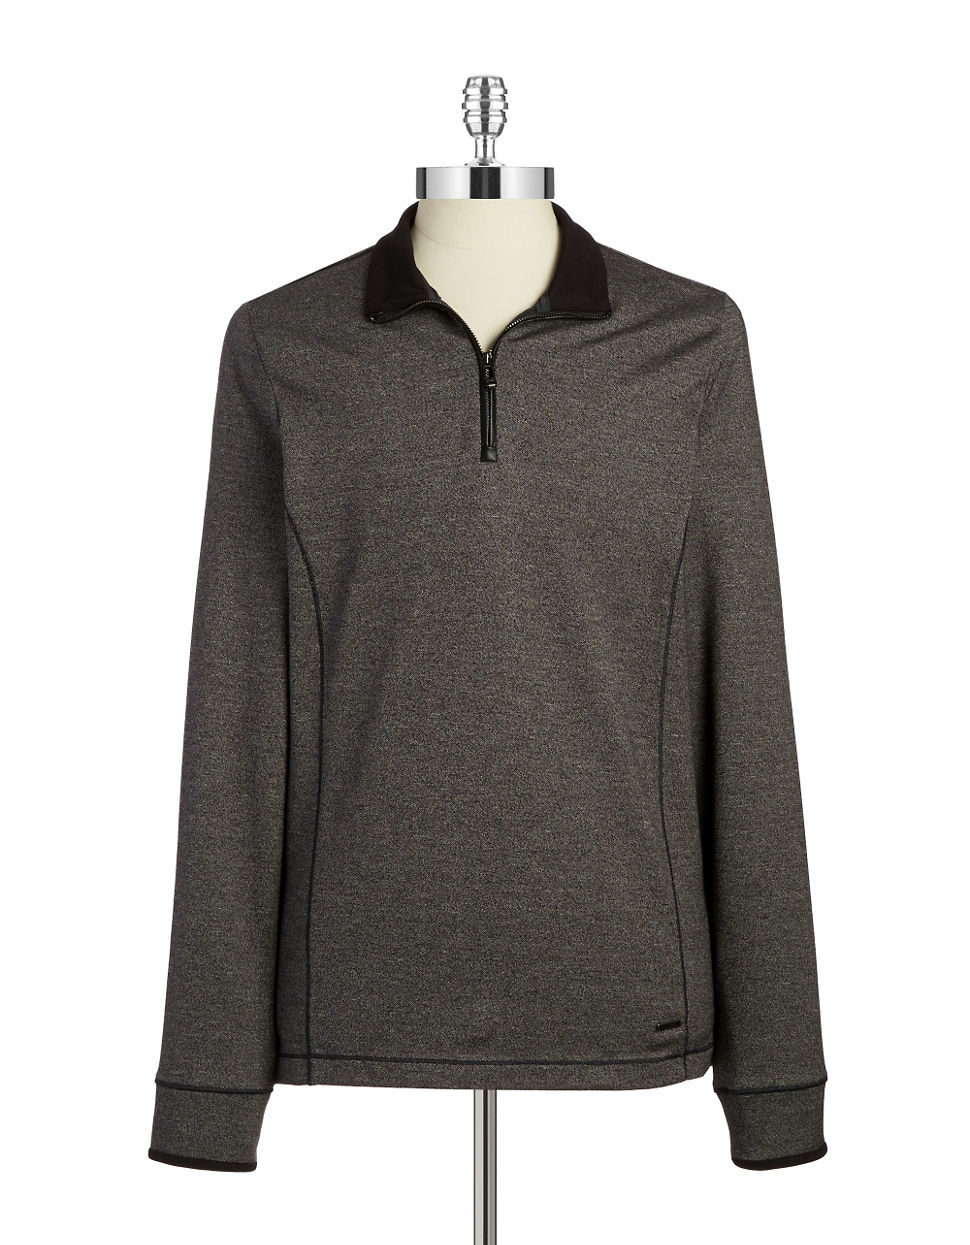 calvin klein quarter zip pullover in gray for men medium grey heather lyst. Black Bedroom Furniture Sets. Home Design Ideas